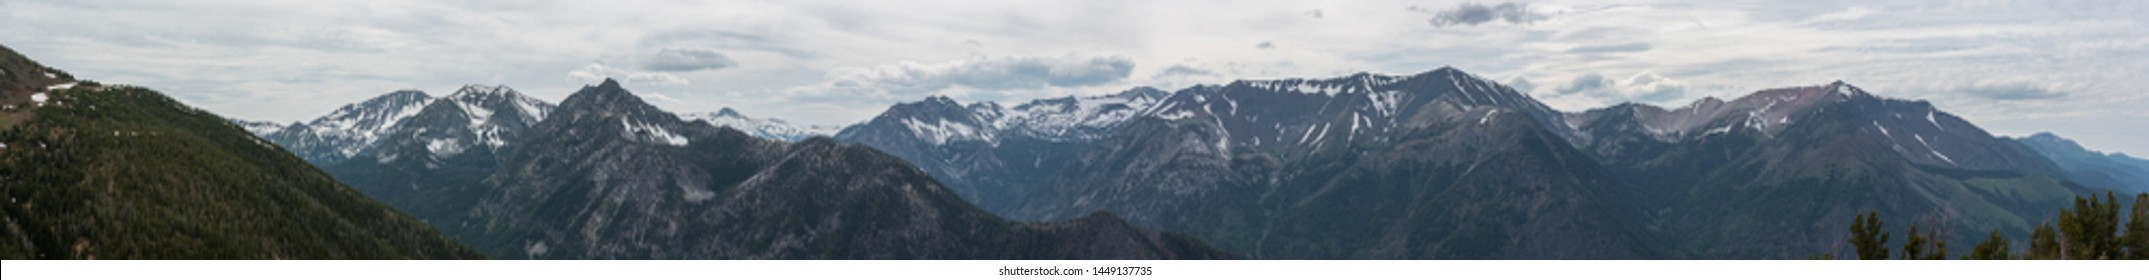 Panoramic image of the majestic Wallowa Mountains and rugged Eagle Cap Wilderness in Eastern Oregon